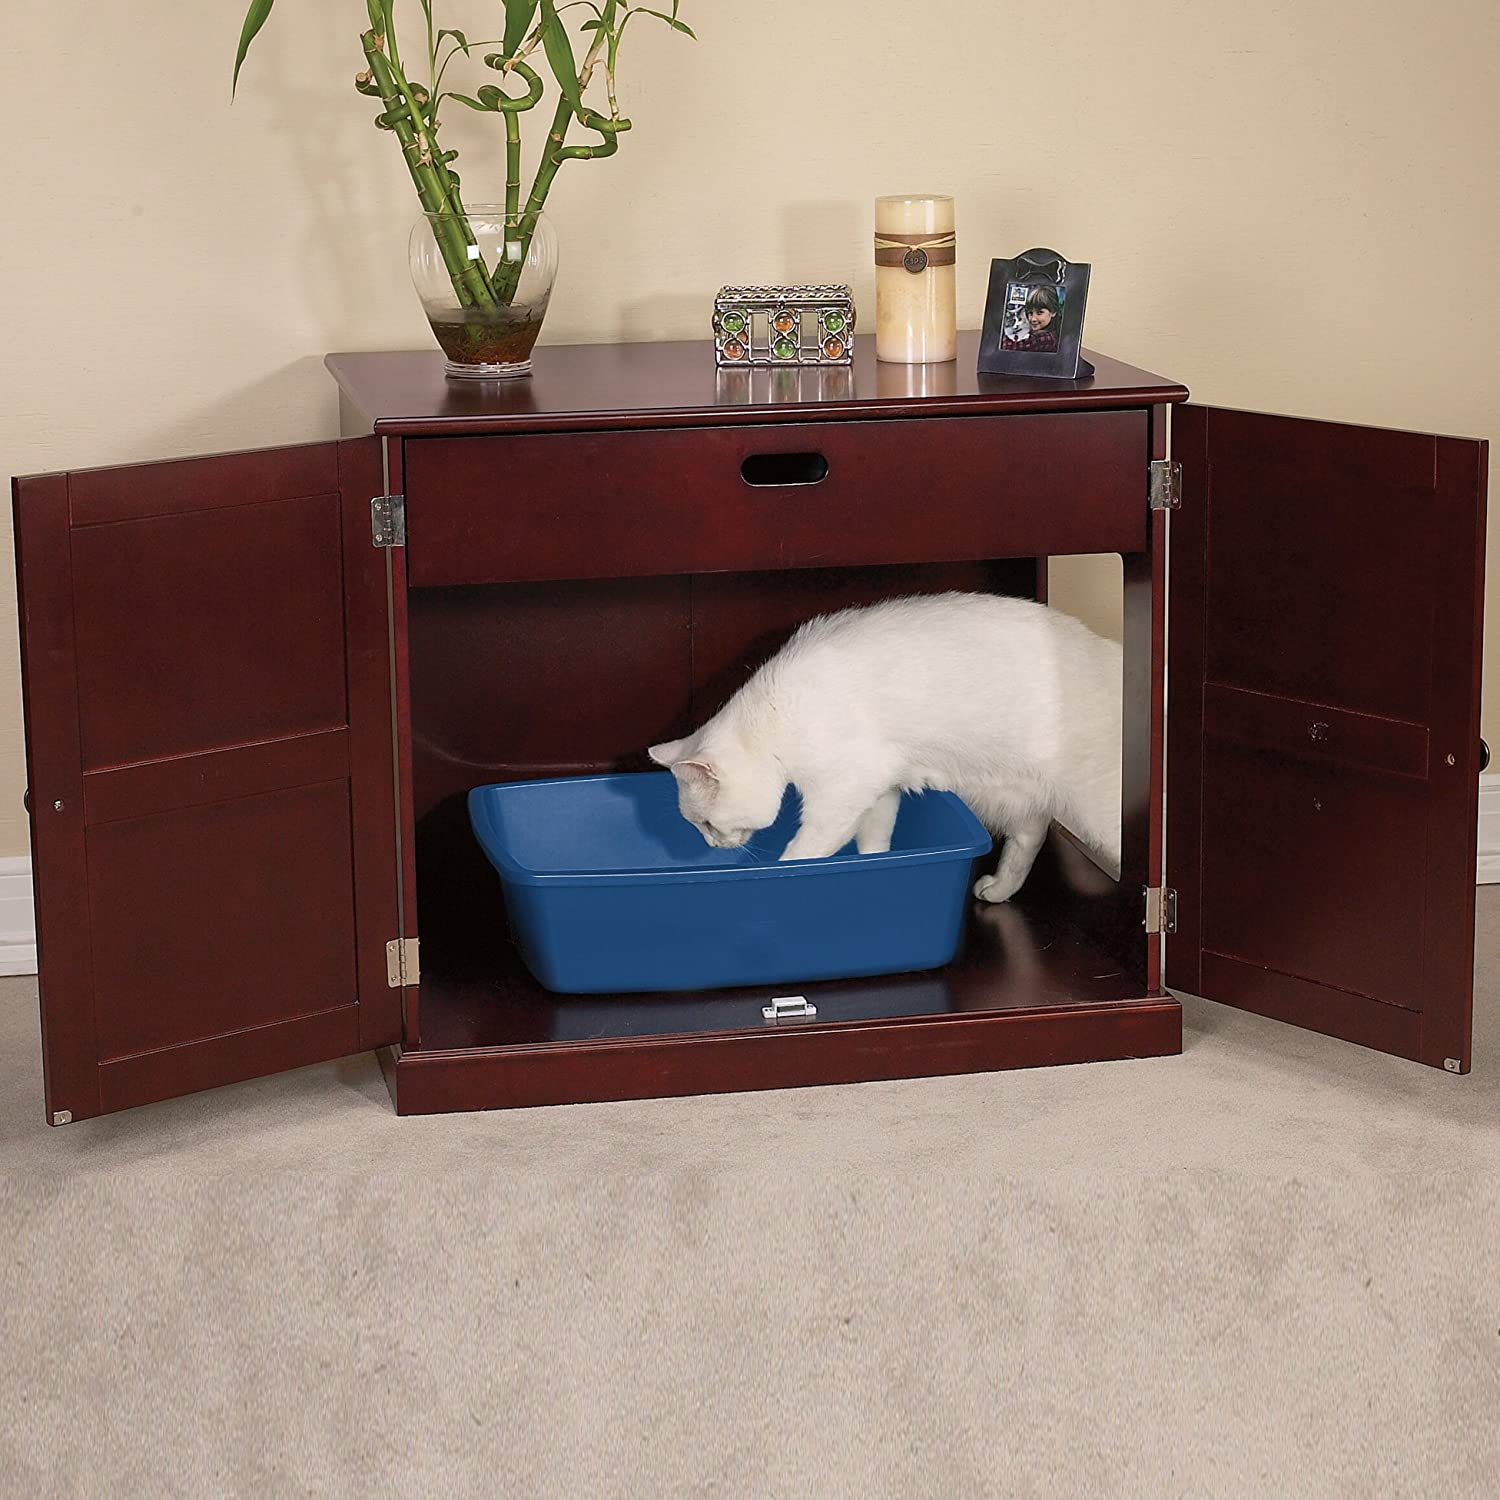 meow town mdf litter box. Amazon.com : Meow Town Concord Cat Litter Cabinet, Mahogany-Finished Concealer Pet Supplies Mdf Box